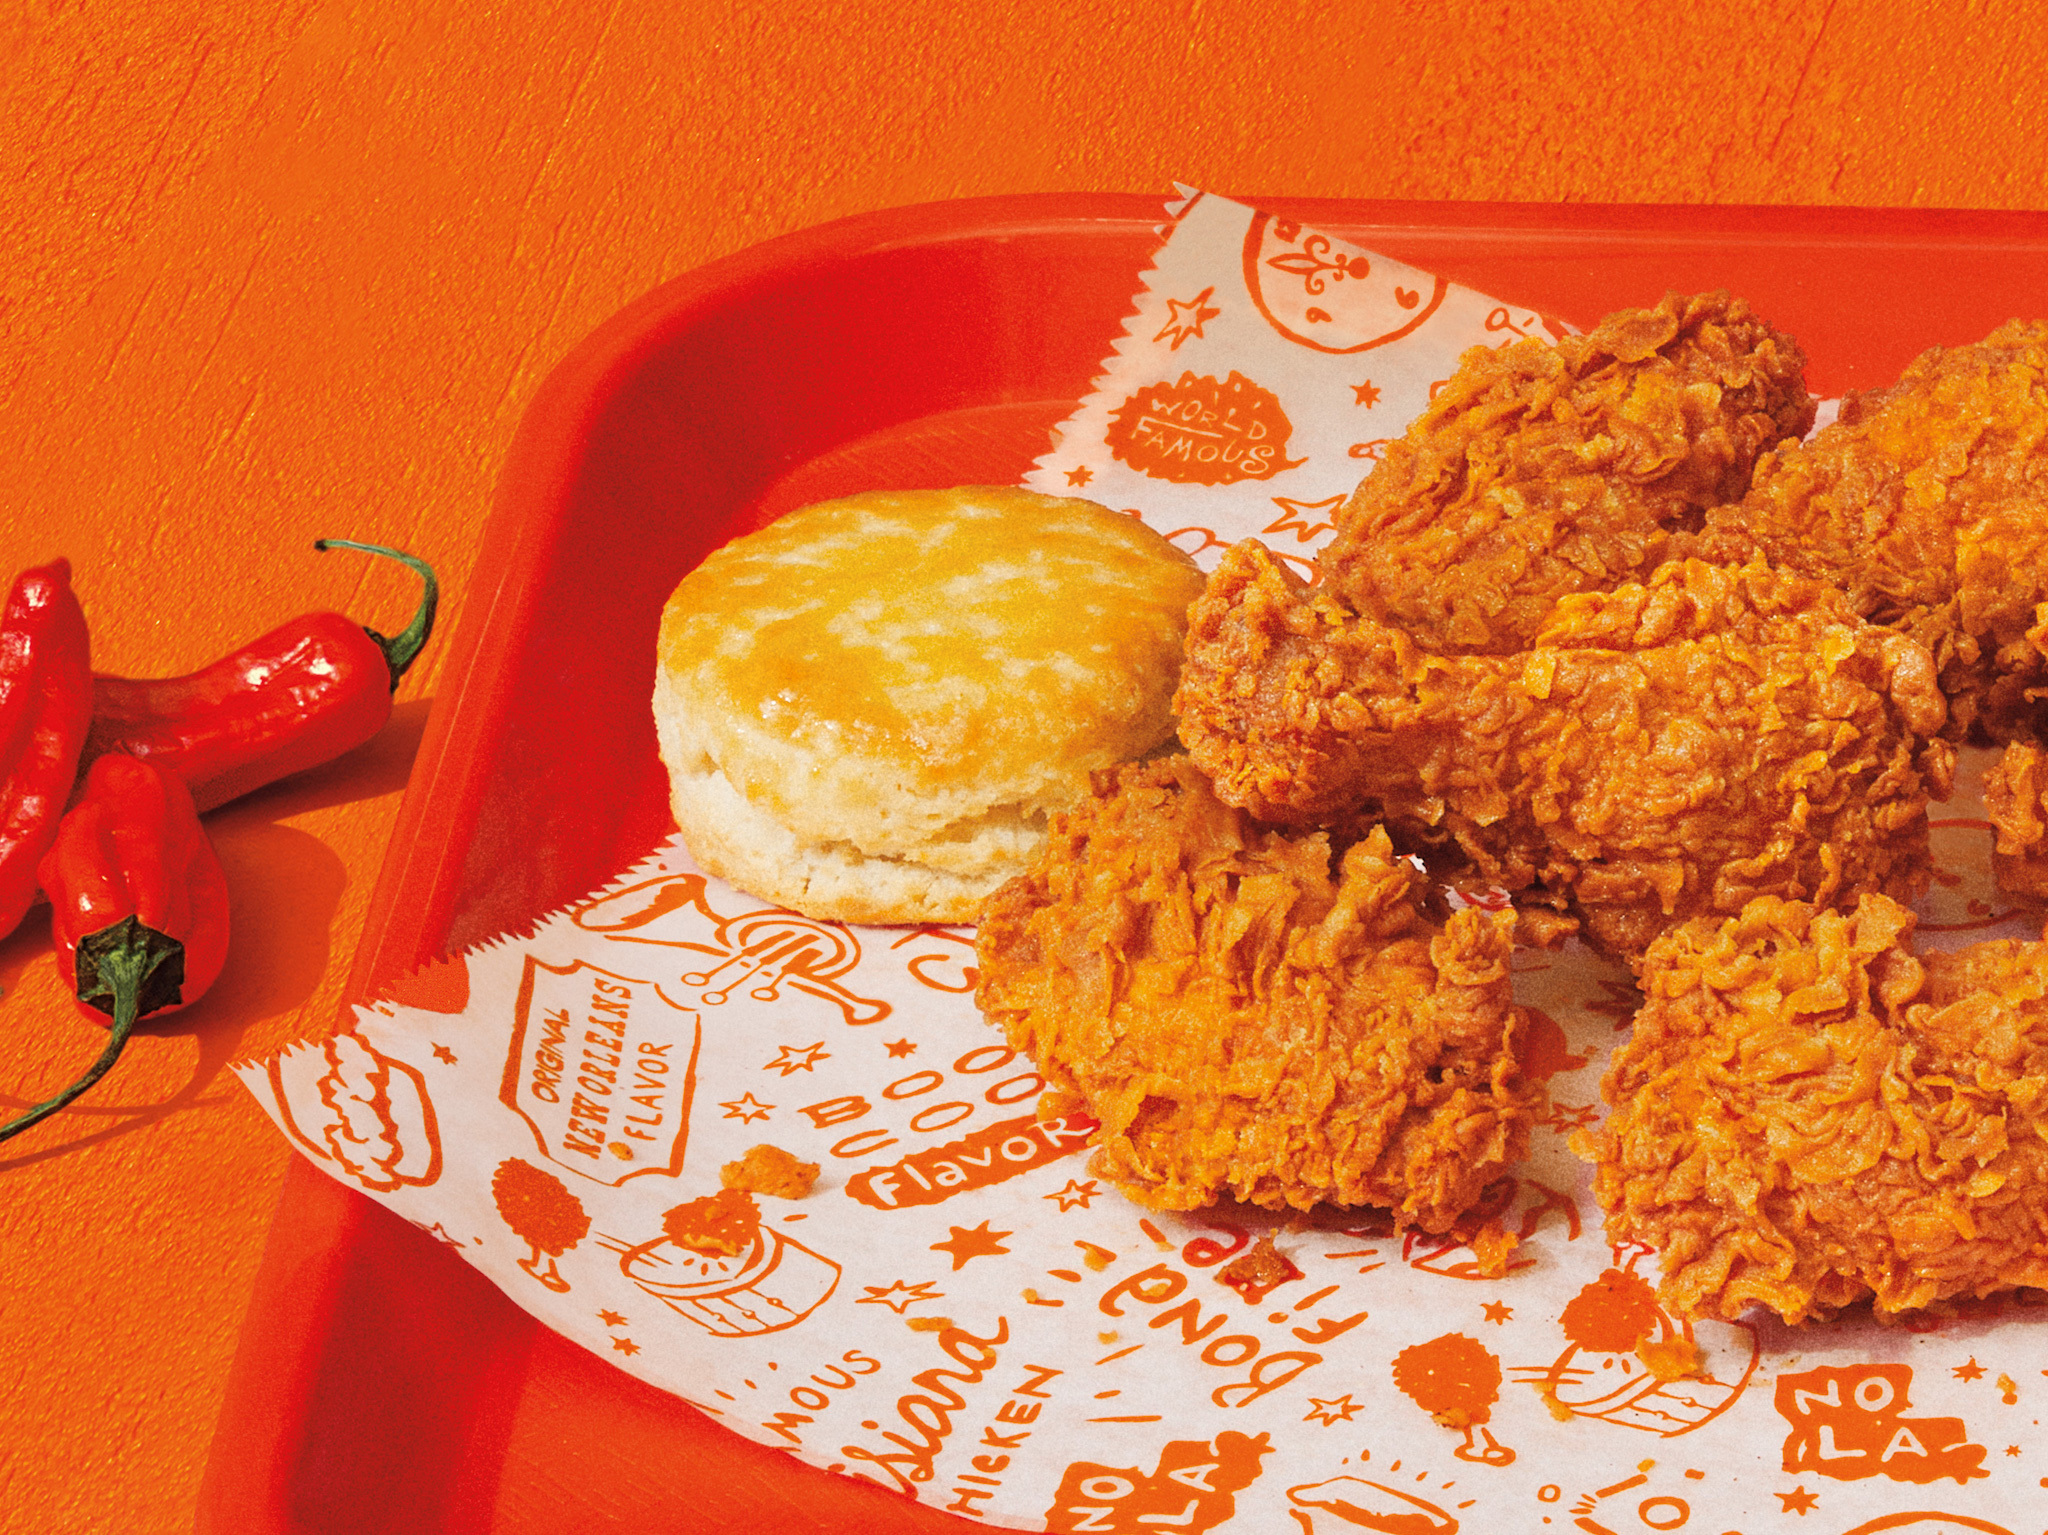 We tried Popeyes' Ghost Pepper Wings to see how spicy they actually taste